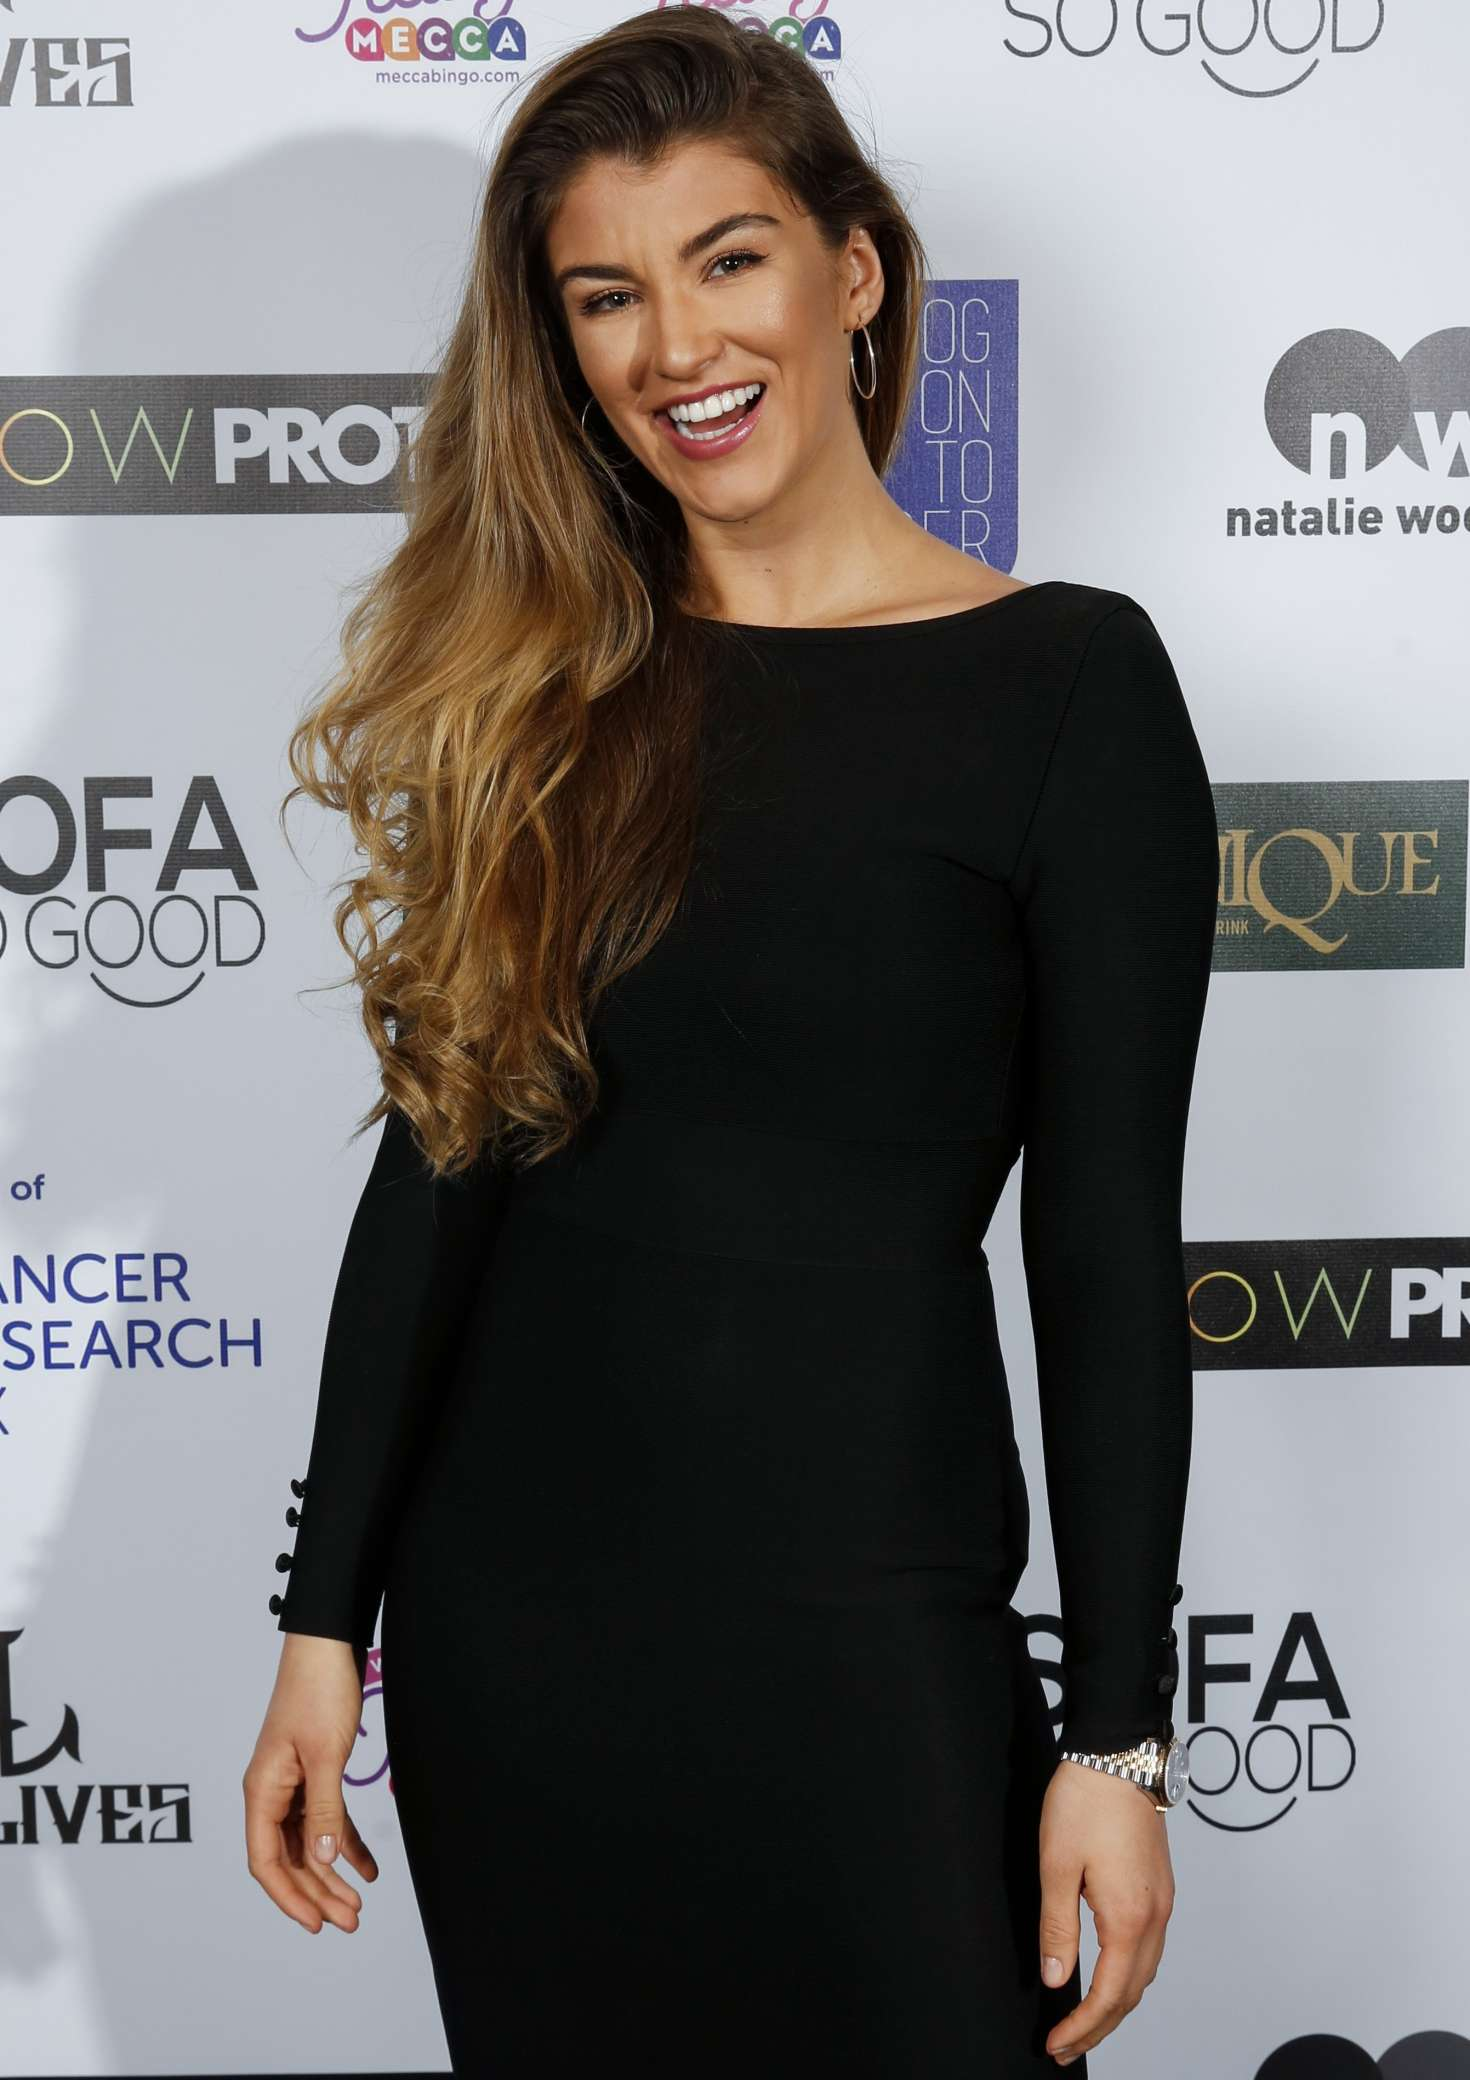 Amy Willerton - James Inghams Jog on to Cancer Event in London